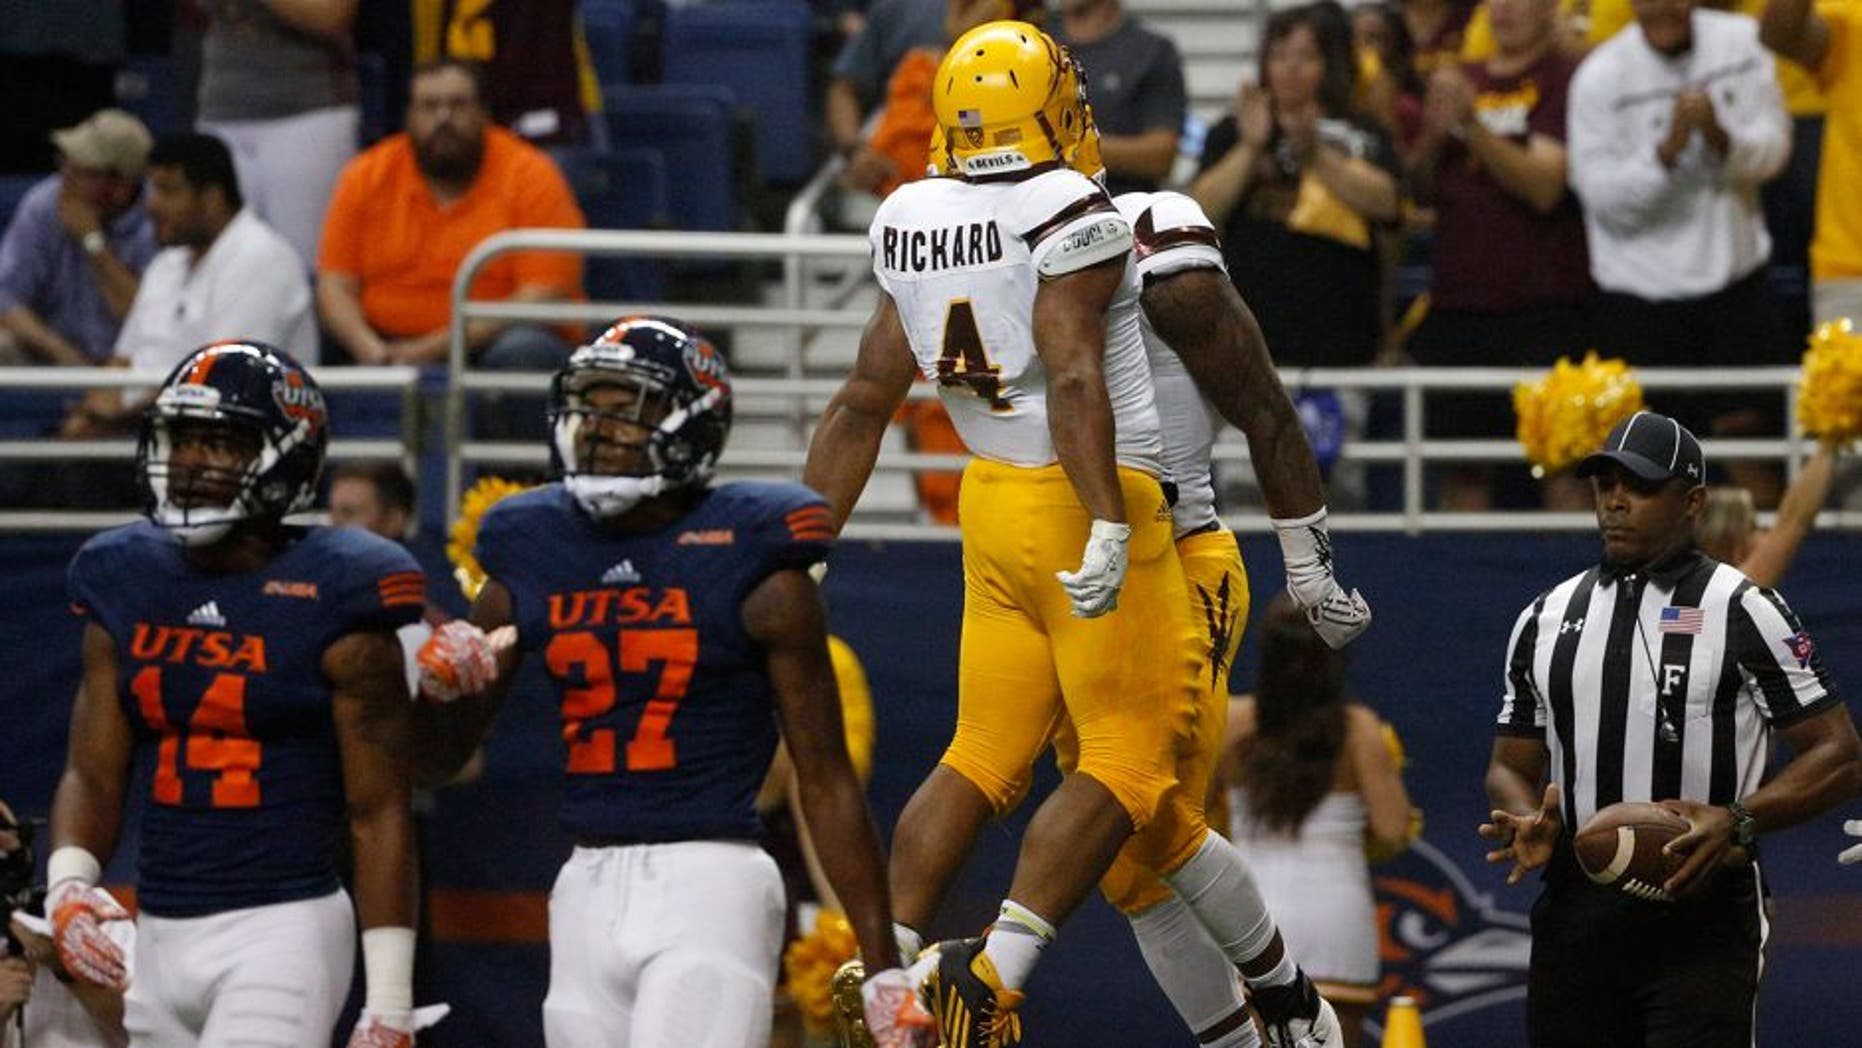 Sep 16, 2016; San Antonio, TX, USA; Arizona State Sun Devils wide receiver N'Keal Harry (right) celebrates with teammates after scoring a touchdown against the UTSA Roadrunners at Alamodome. Mandatory Credit: Soobum Im-USA TODAY Sports